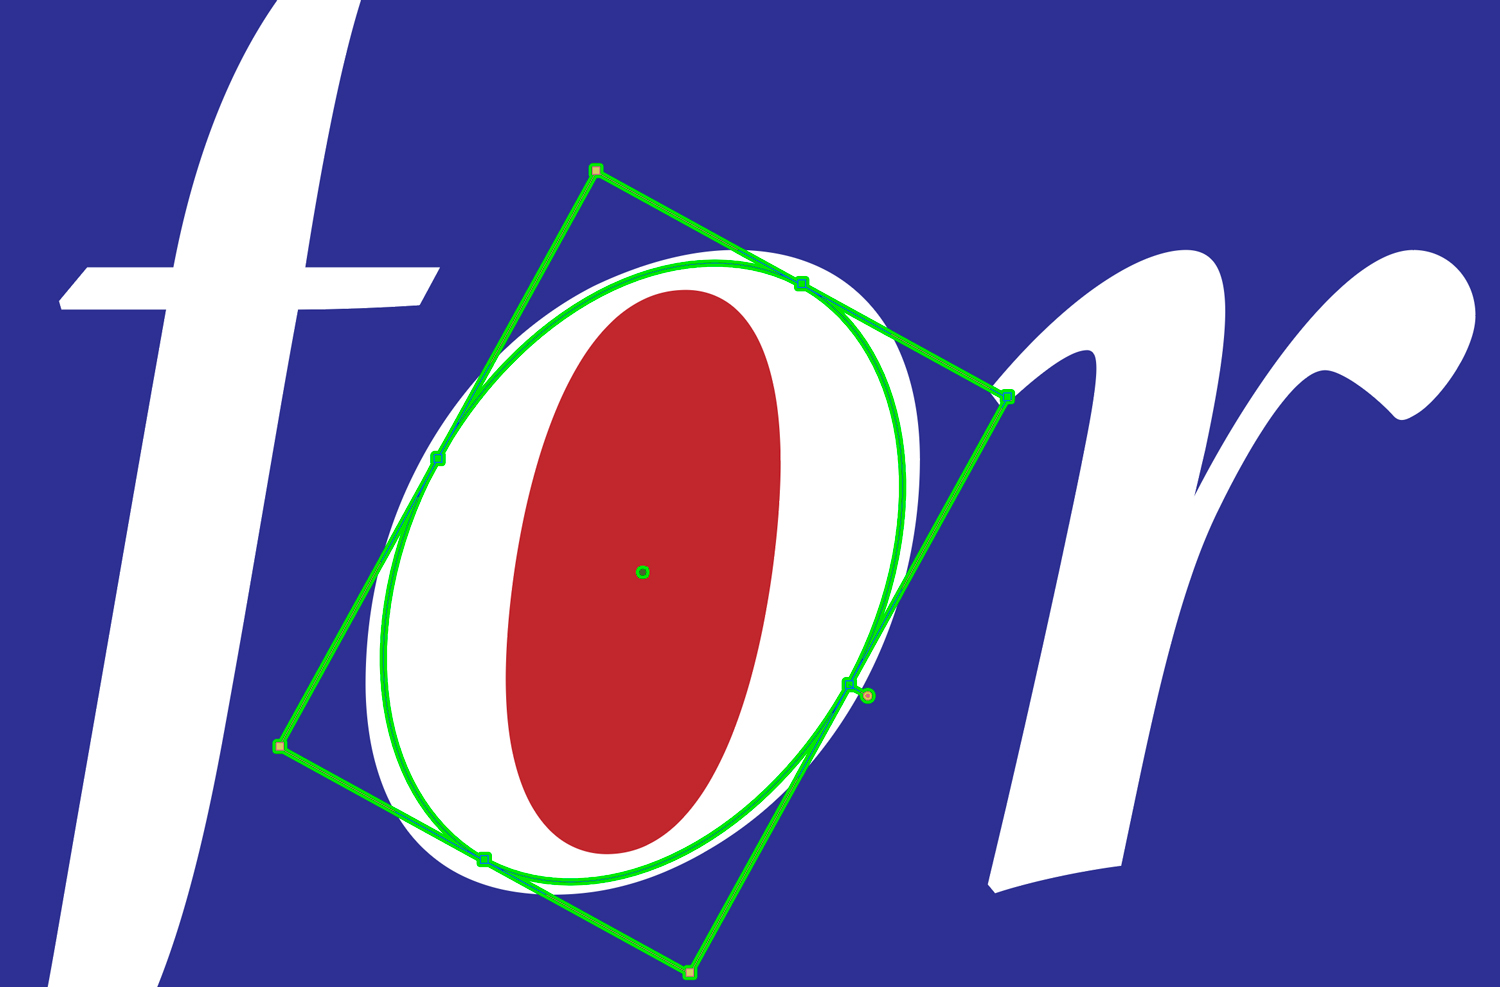 white italic letters f-o-r on a blue field with the counter of the O turned red